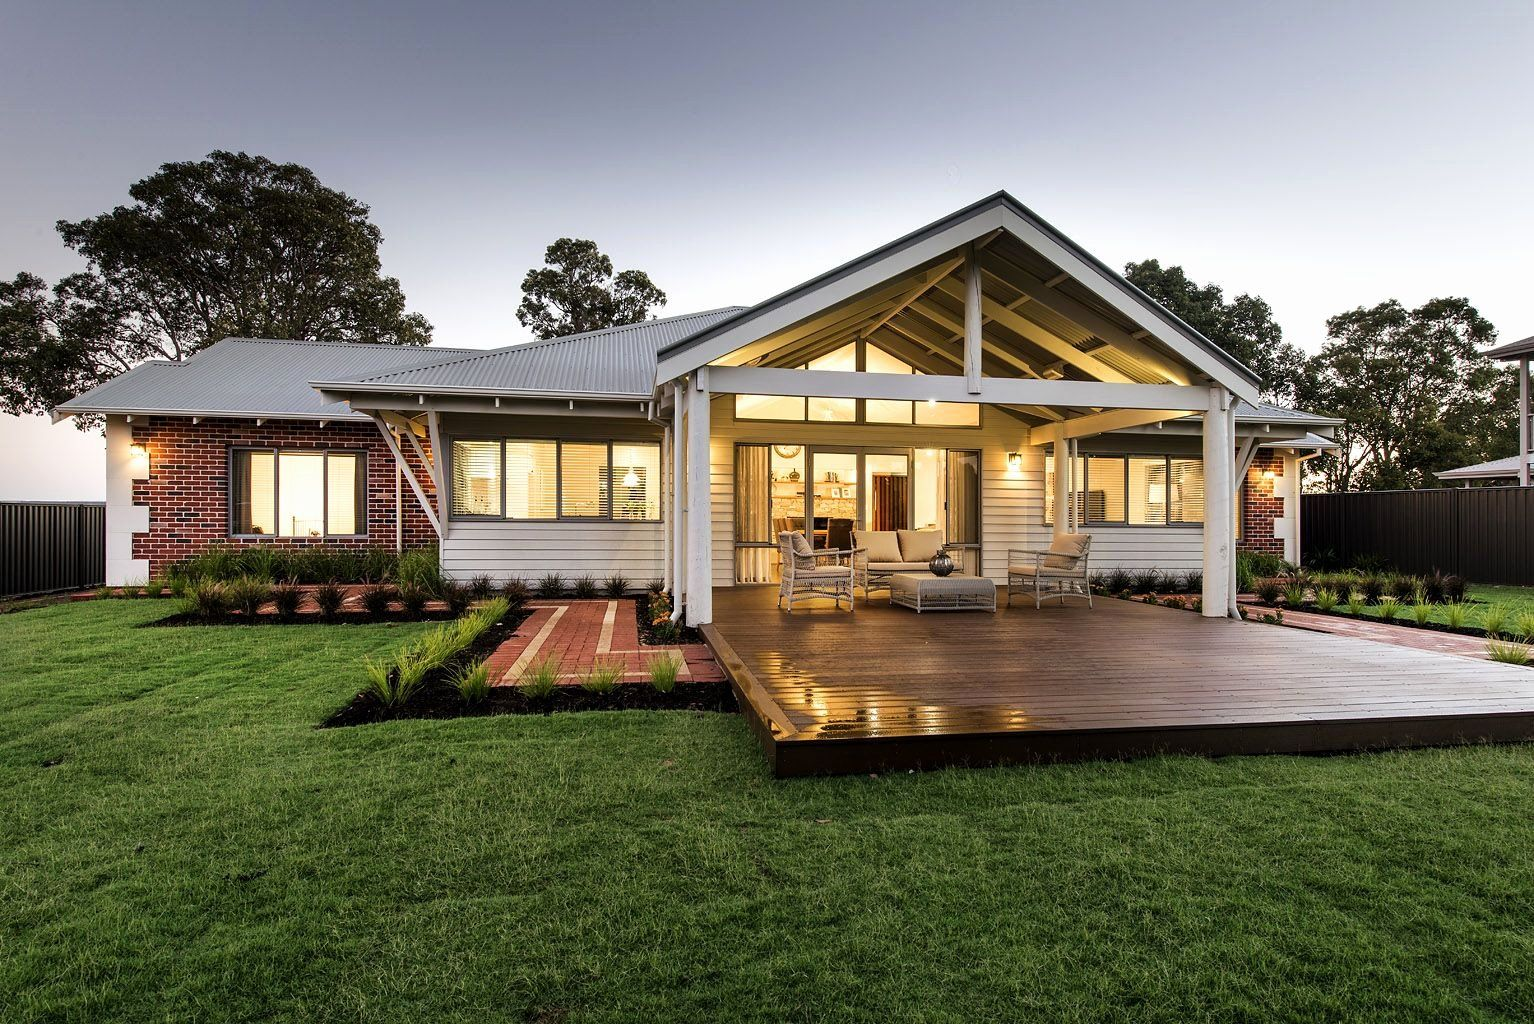 Australian Country House Plans New Love This Country Home Design With Tall Living Area Country Home Exteriors Countryside House Australian Country Houses